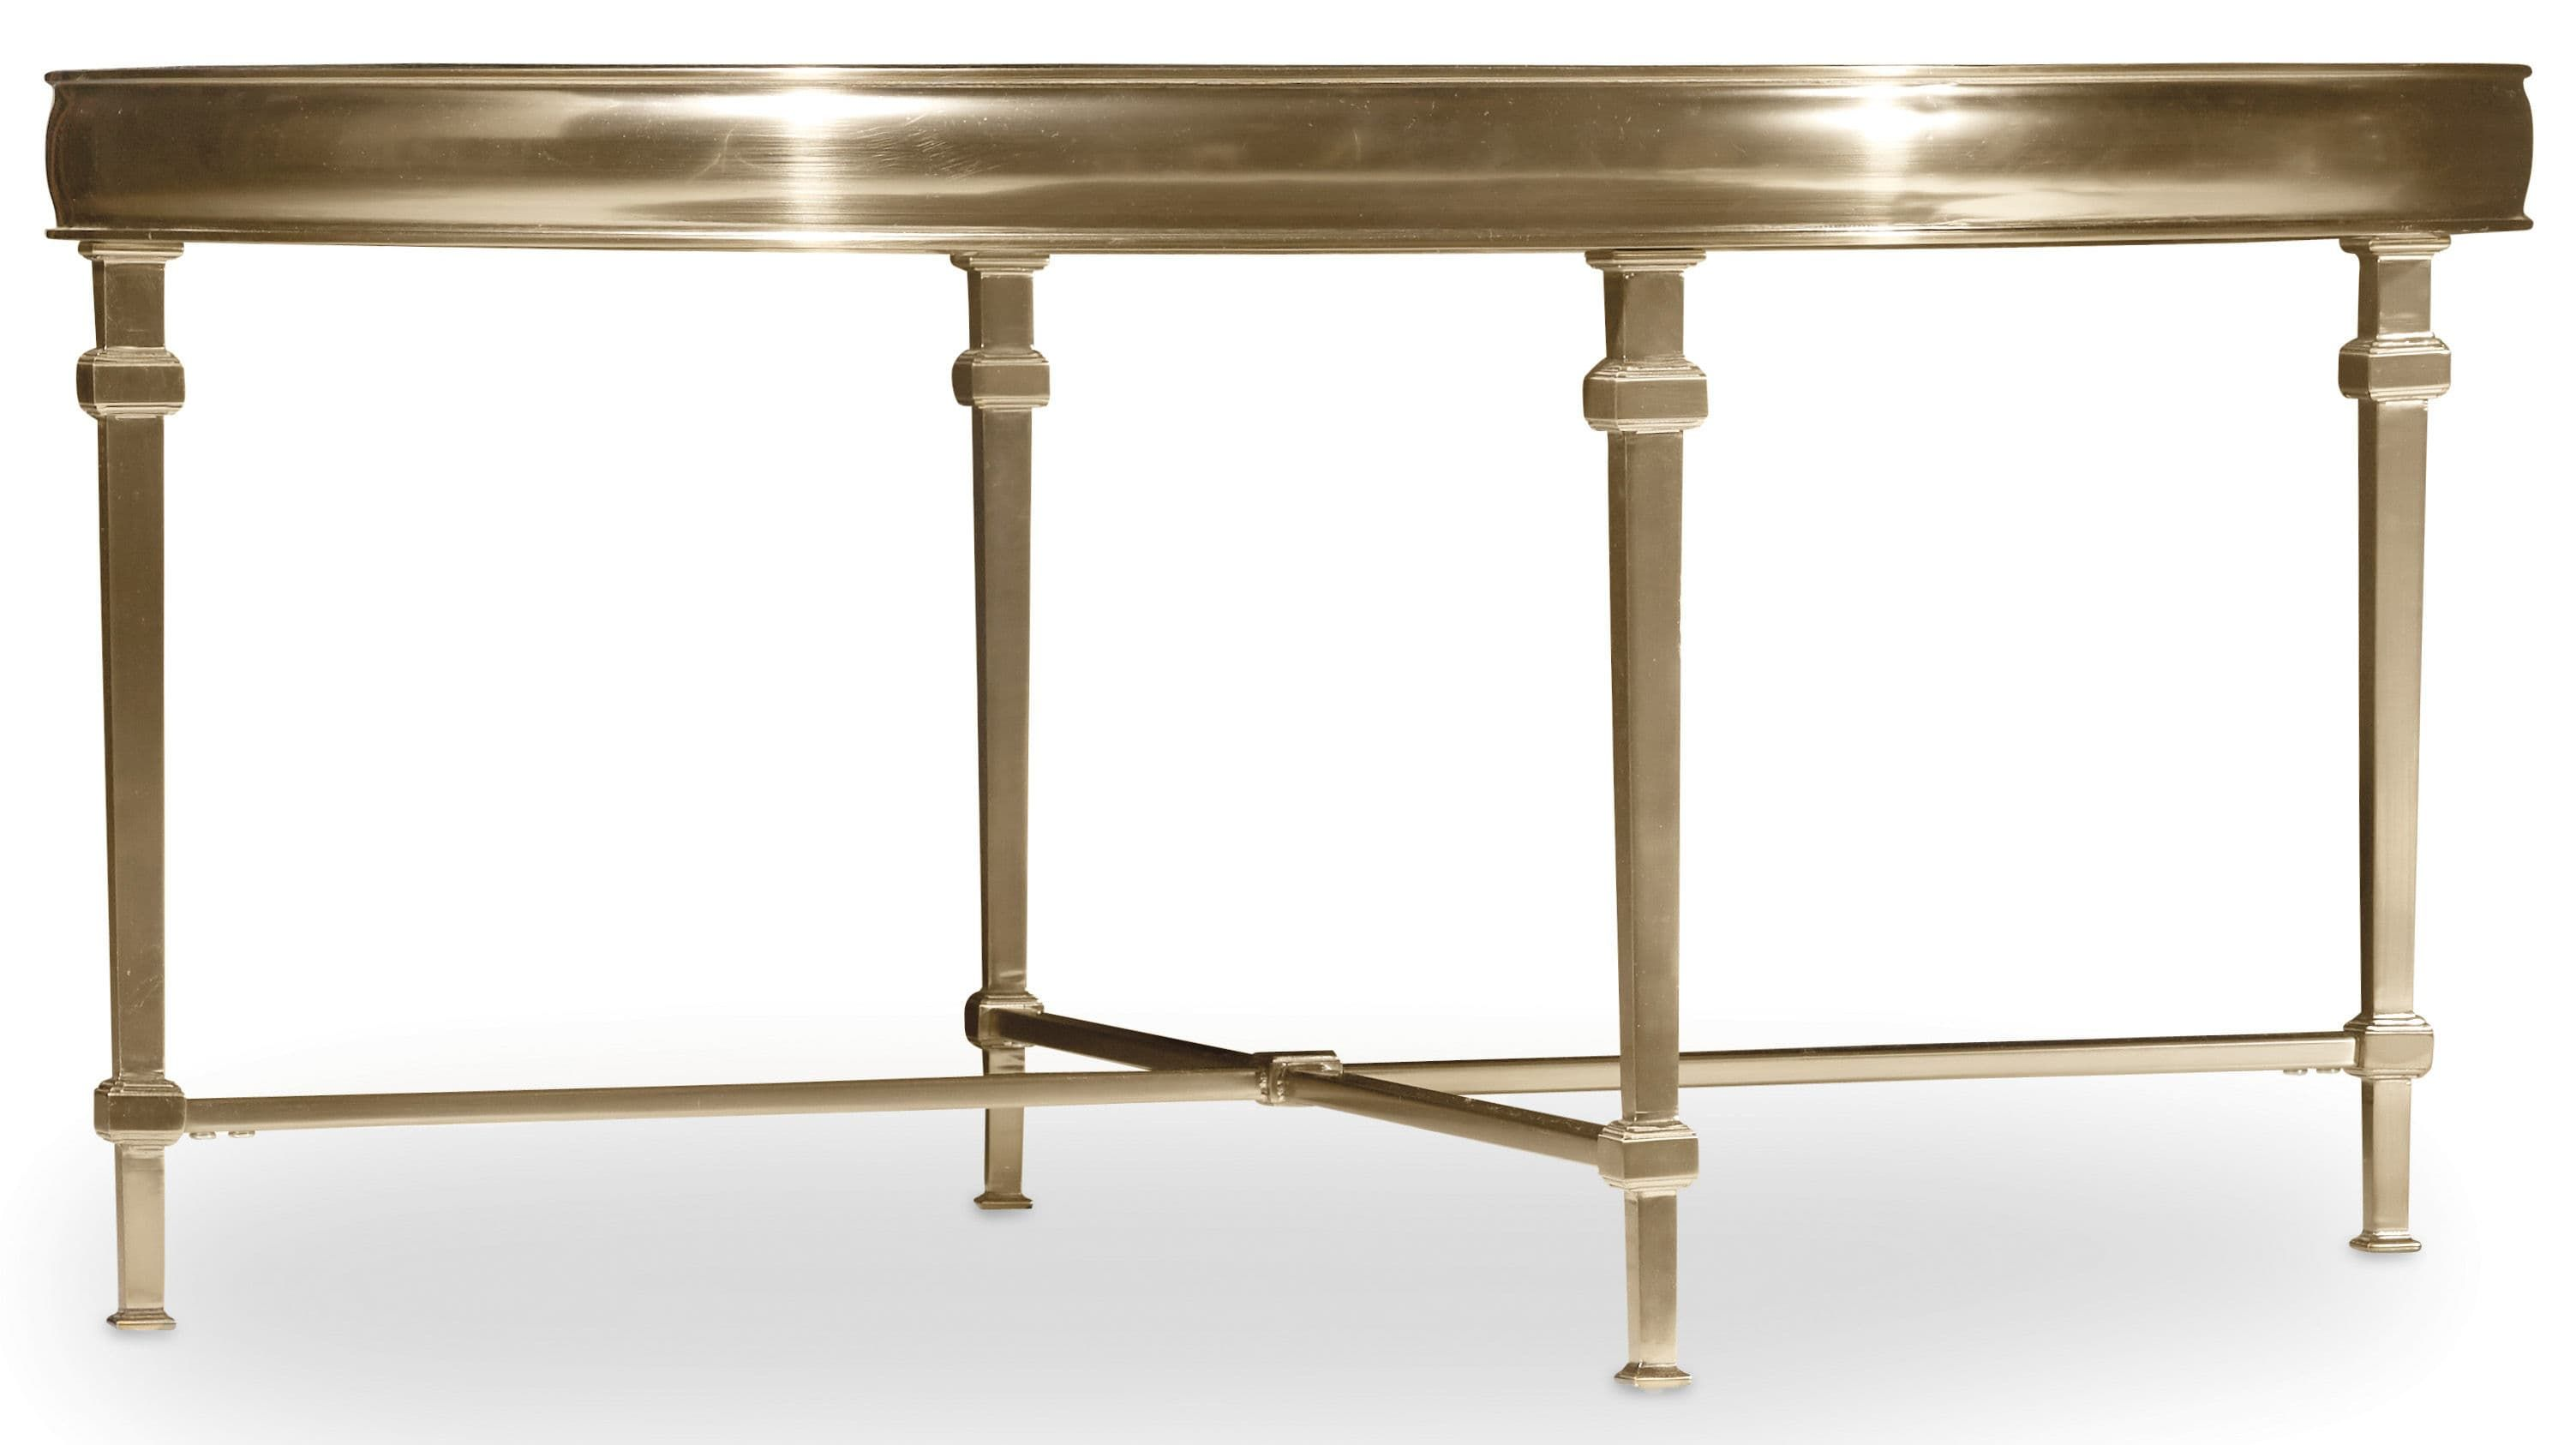 Gold colored metal and glass tops make the Highland Park tables ...